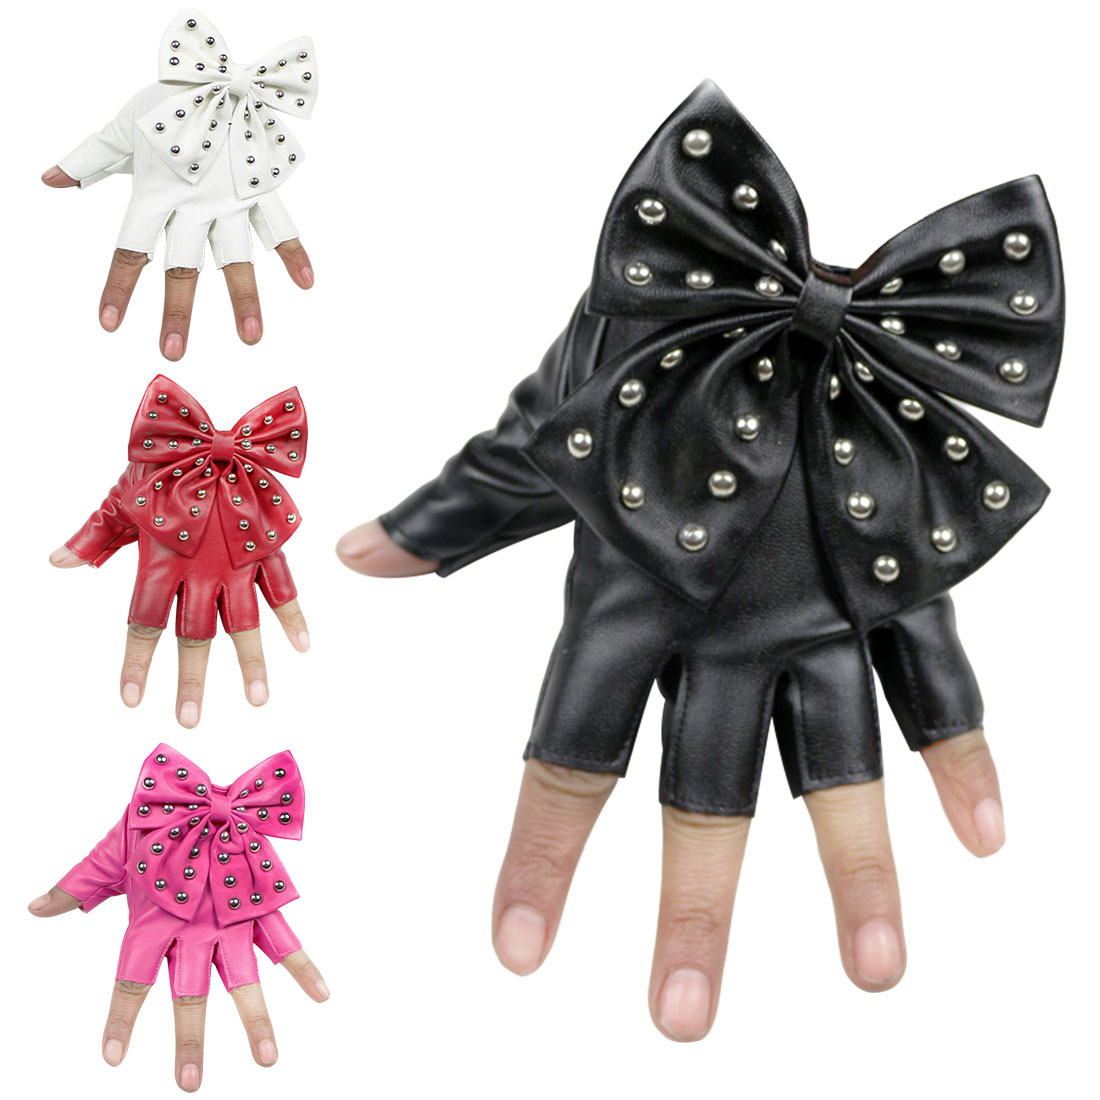 Leather Glvoes Women Winter Big Bow Full Finger Gloves For Dancing Party Retro Vintage Mittens Black White Pink Red